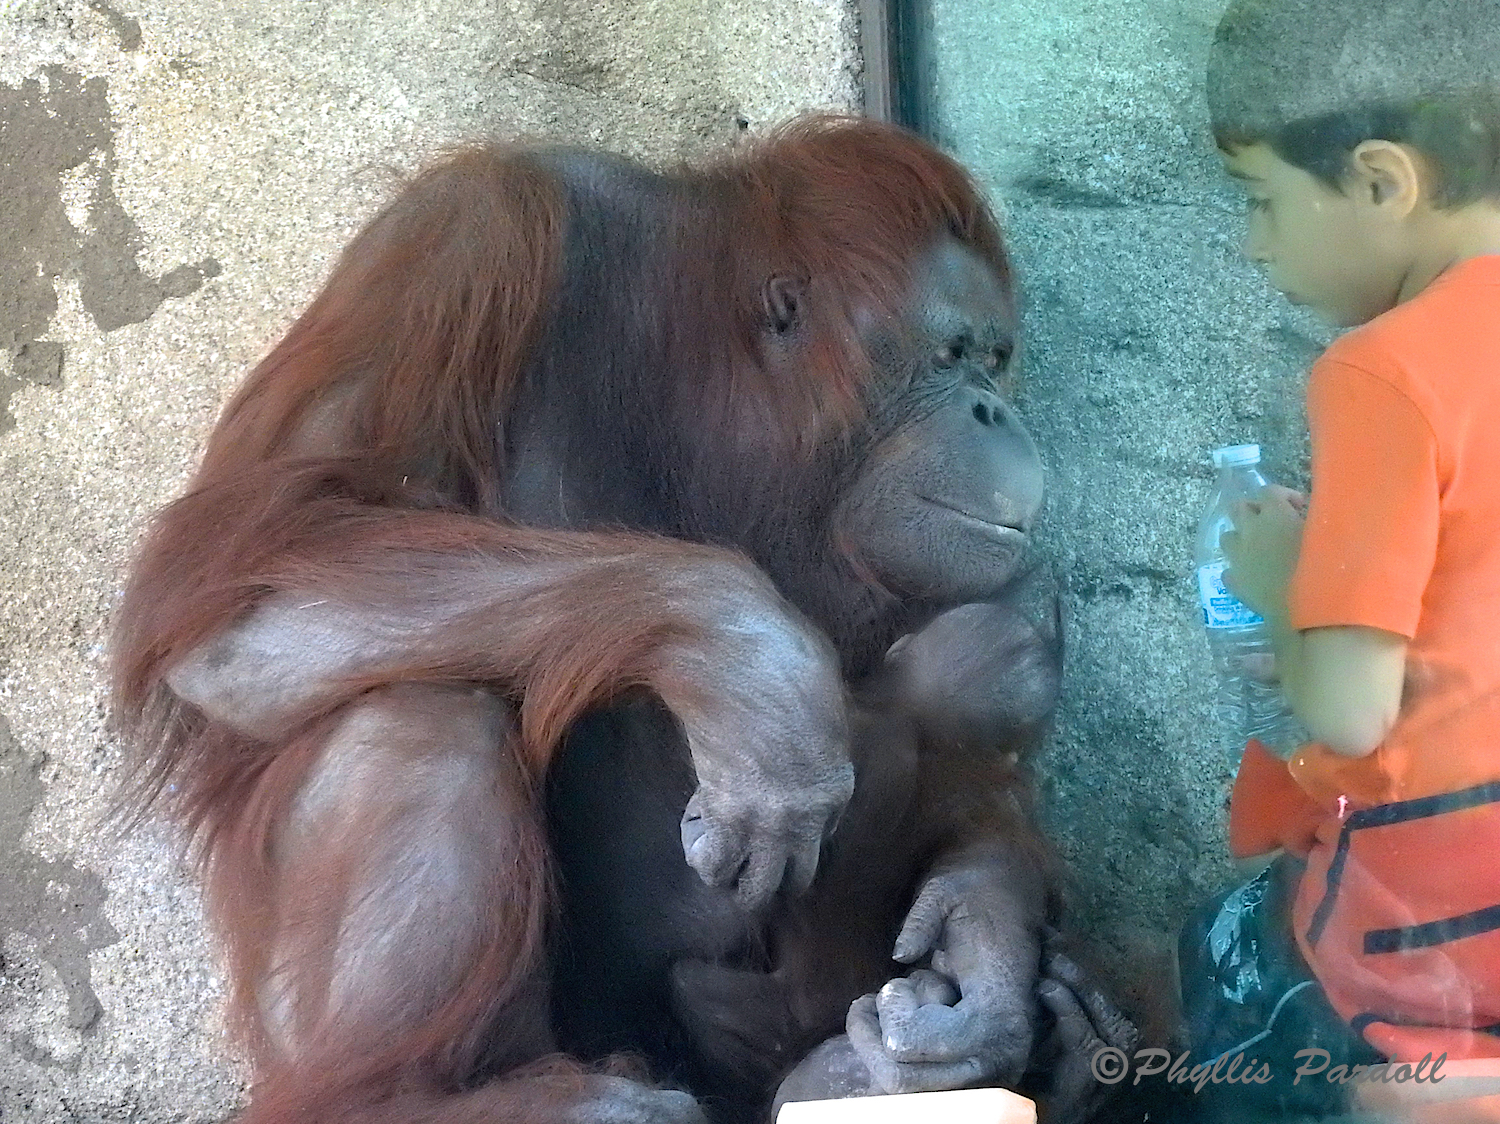 Bess is known for liking to get up close to the glass, especially for children.